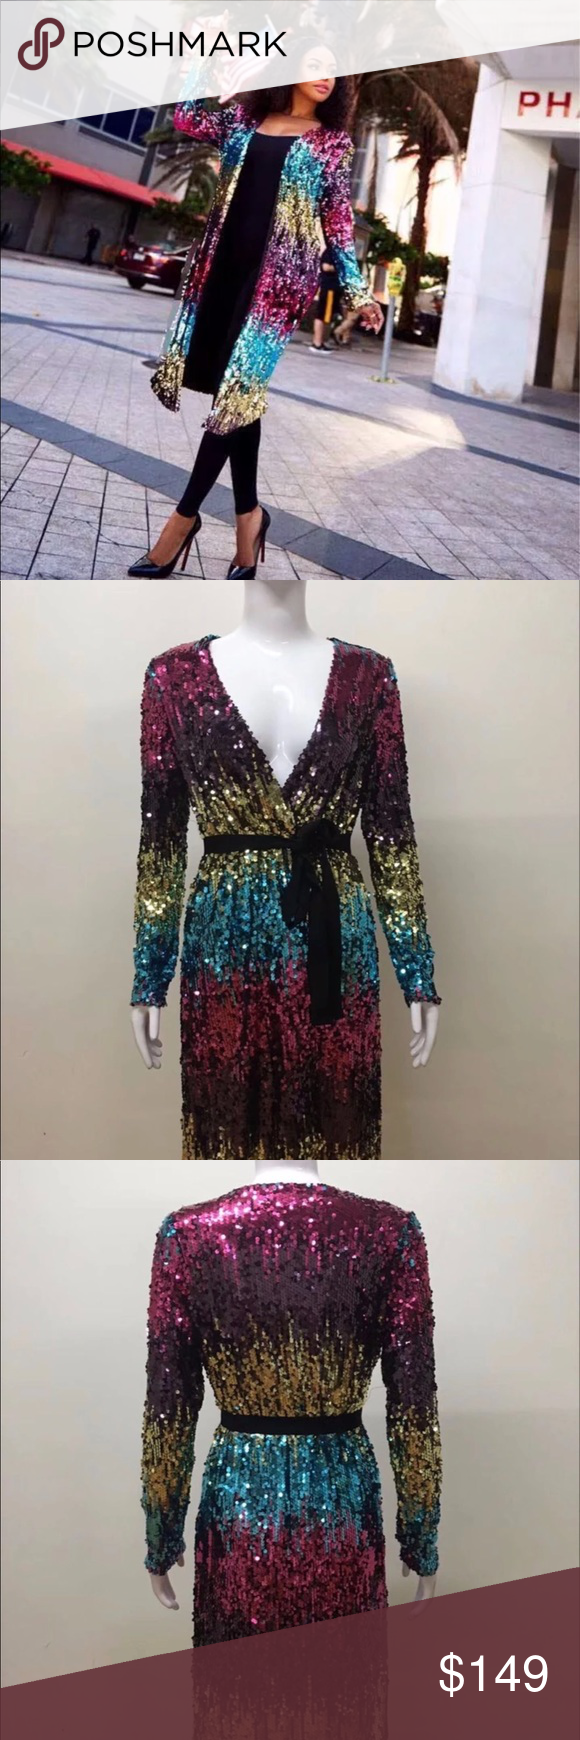 a267b07fce9 Rainbow sequin cardigan Rainbow sequin cardigan. Can be dressed up or down  Jackets   Coats